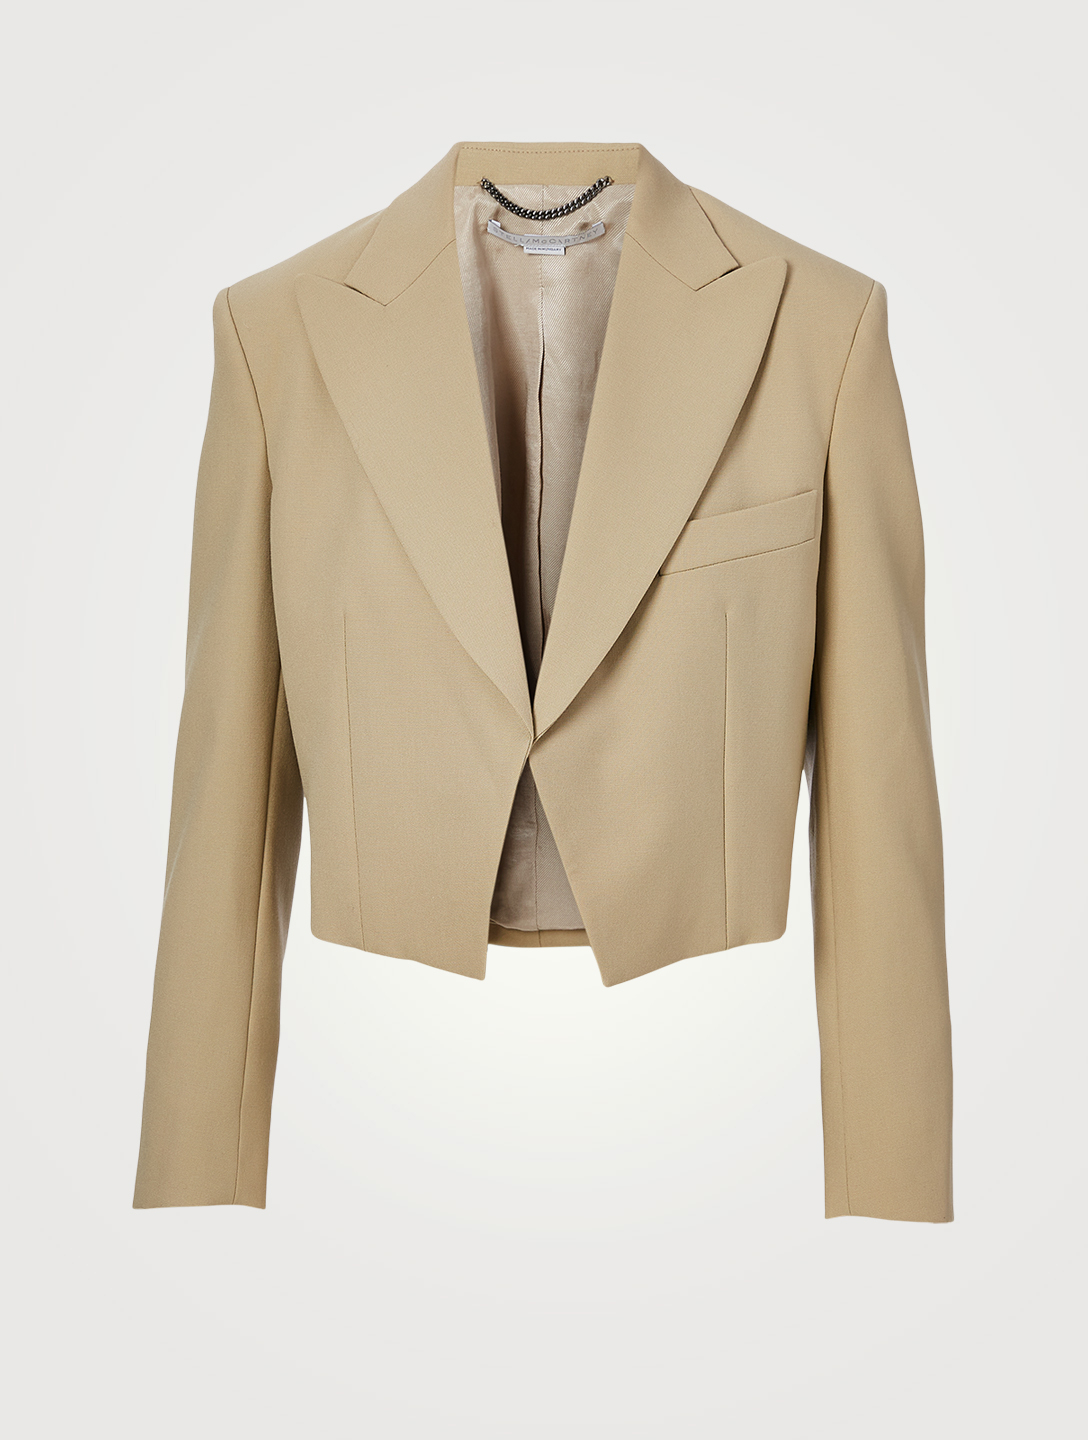 STELLA MCCARTNEY Adley Wool Cropped Blazer Women's Beige